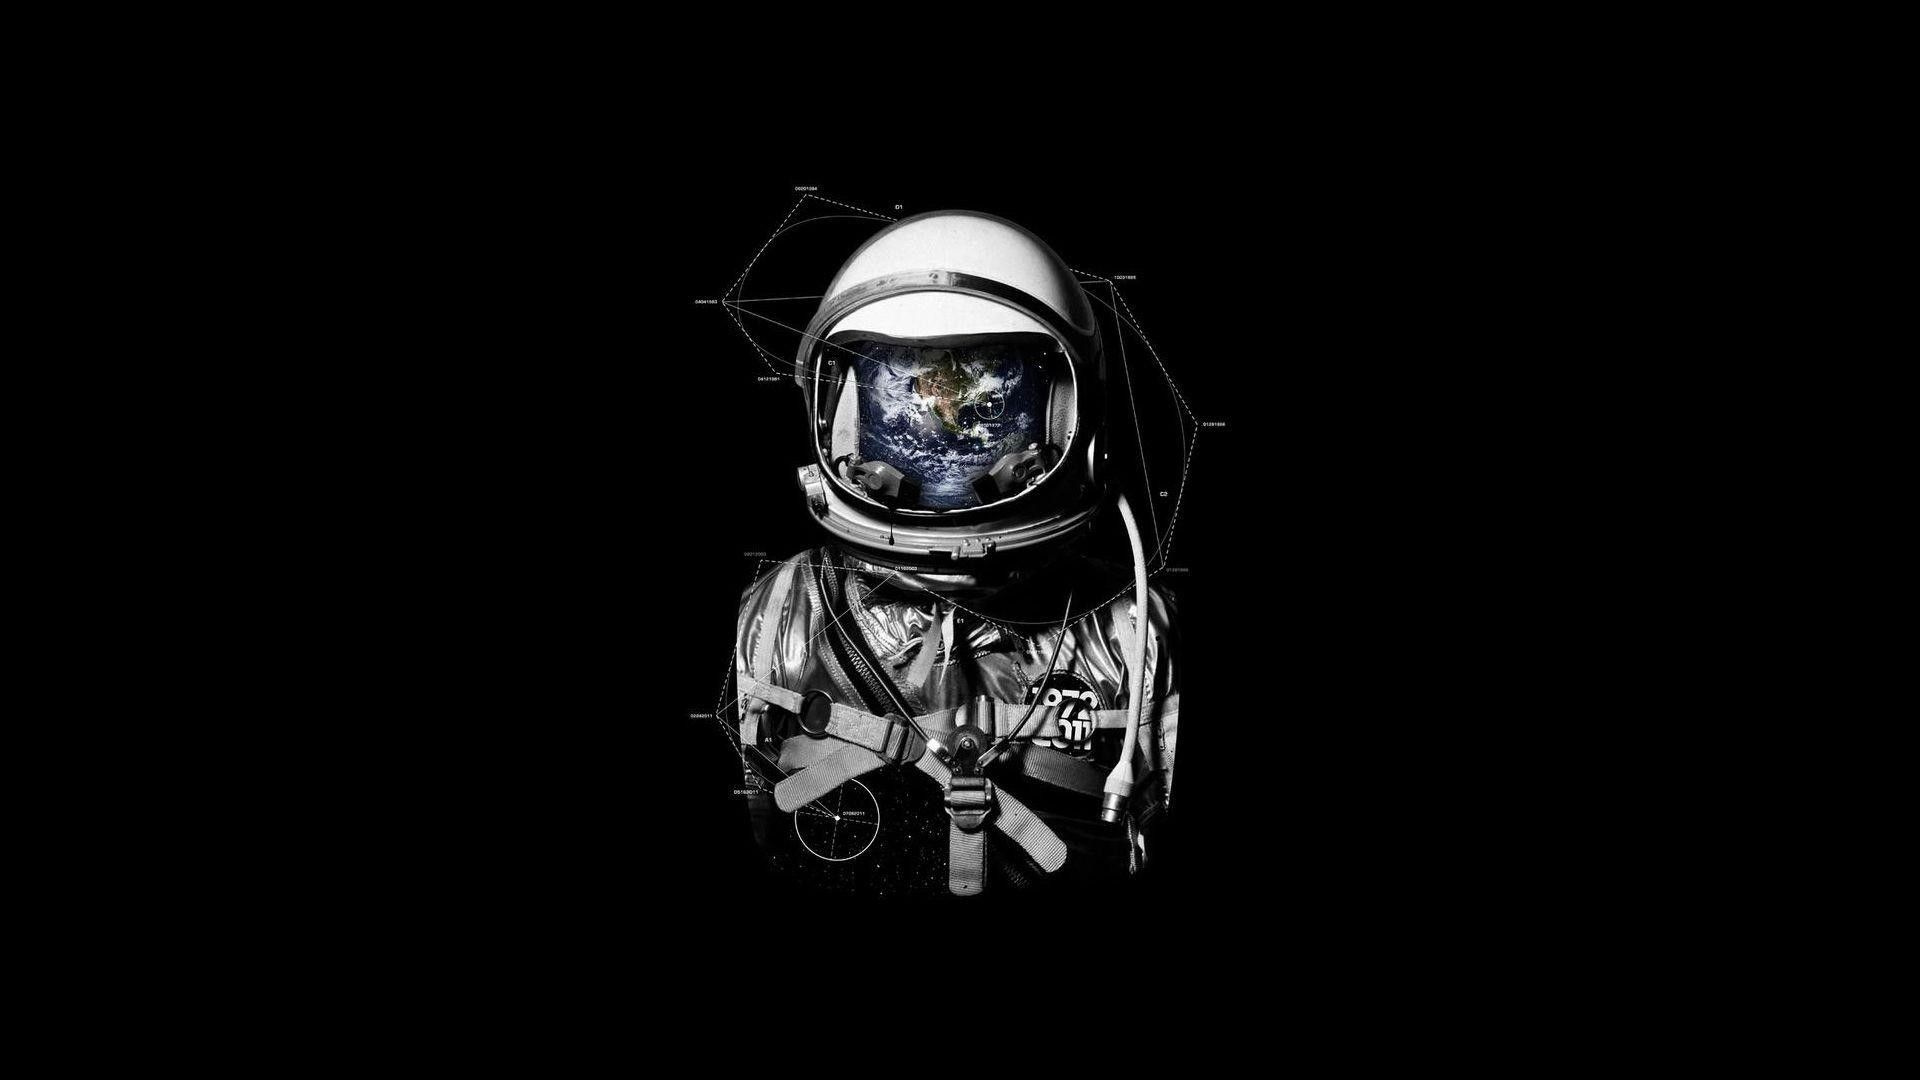 Astronaut Phone Wallpapers Top Free Astronaut Phone Backgrounds